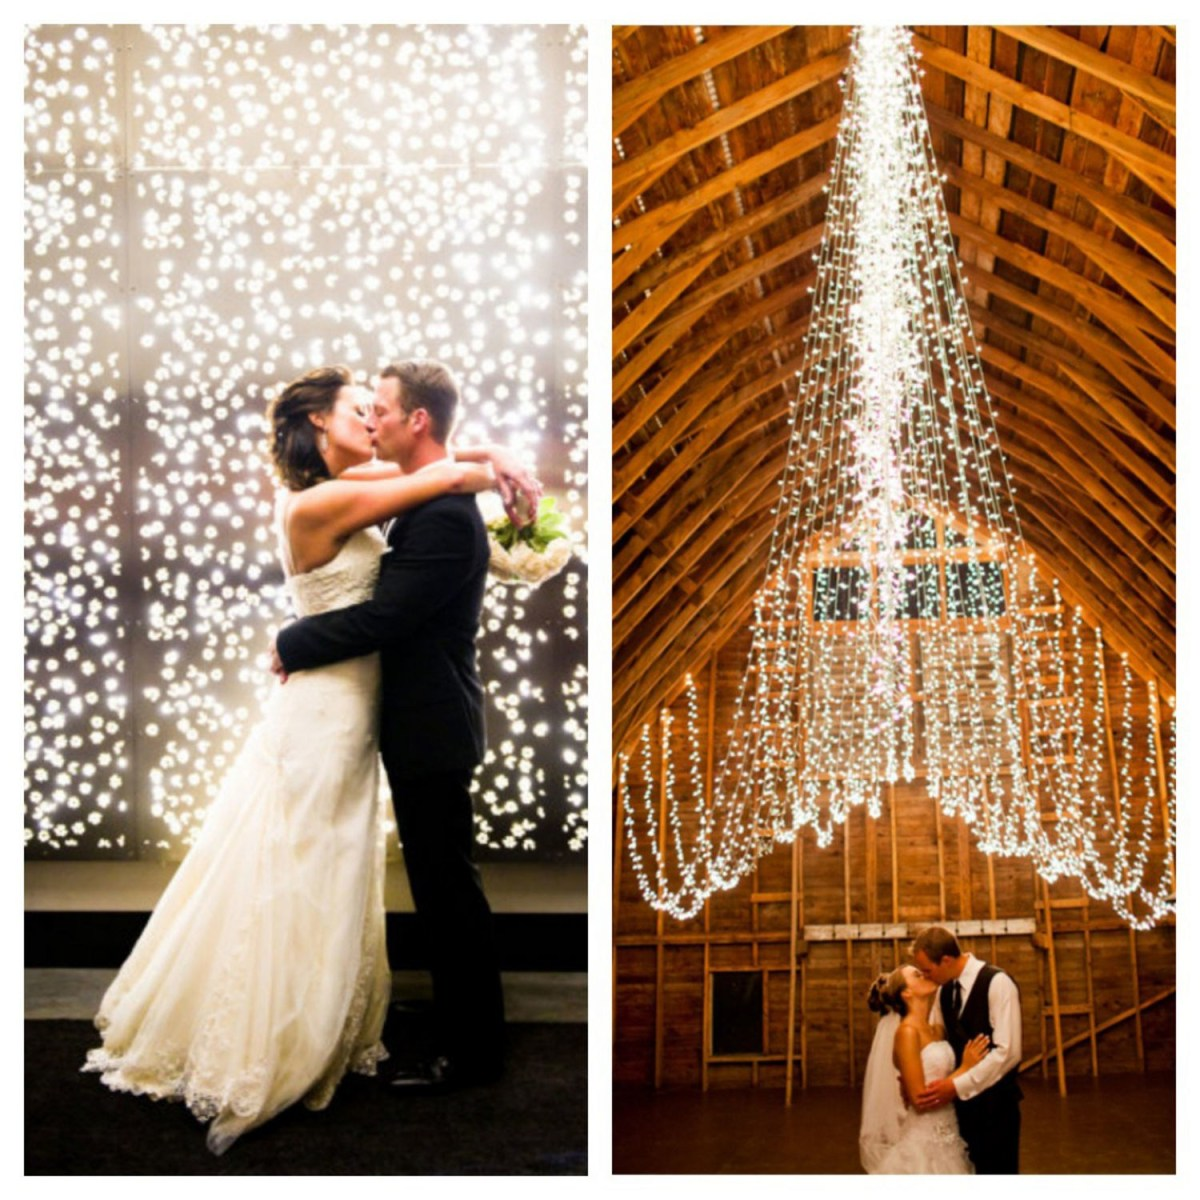 Winter Wedding Decorations Winter Wedding Decor Ideas Sparkly And Twinkly Decorations Glamour